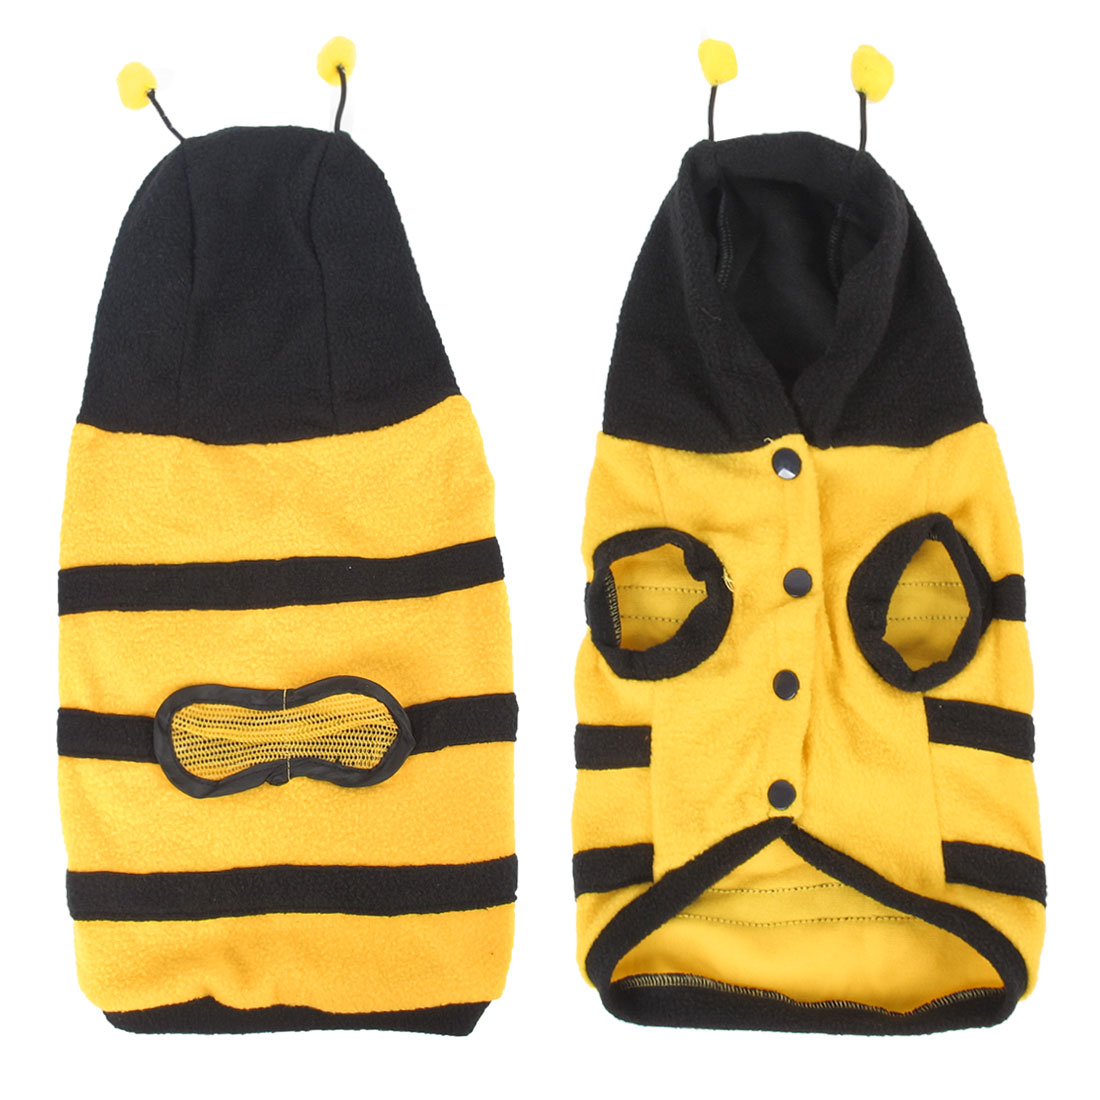 Unique Bargains Pet Cat Dog Yellow Black Single Breasted Bee Shape Hoodie Apparel Coat Size M